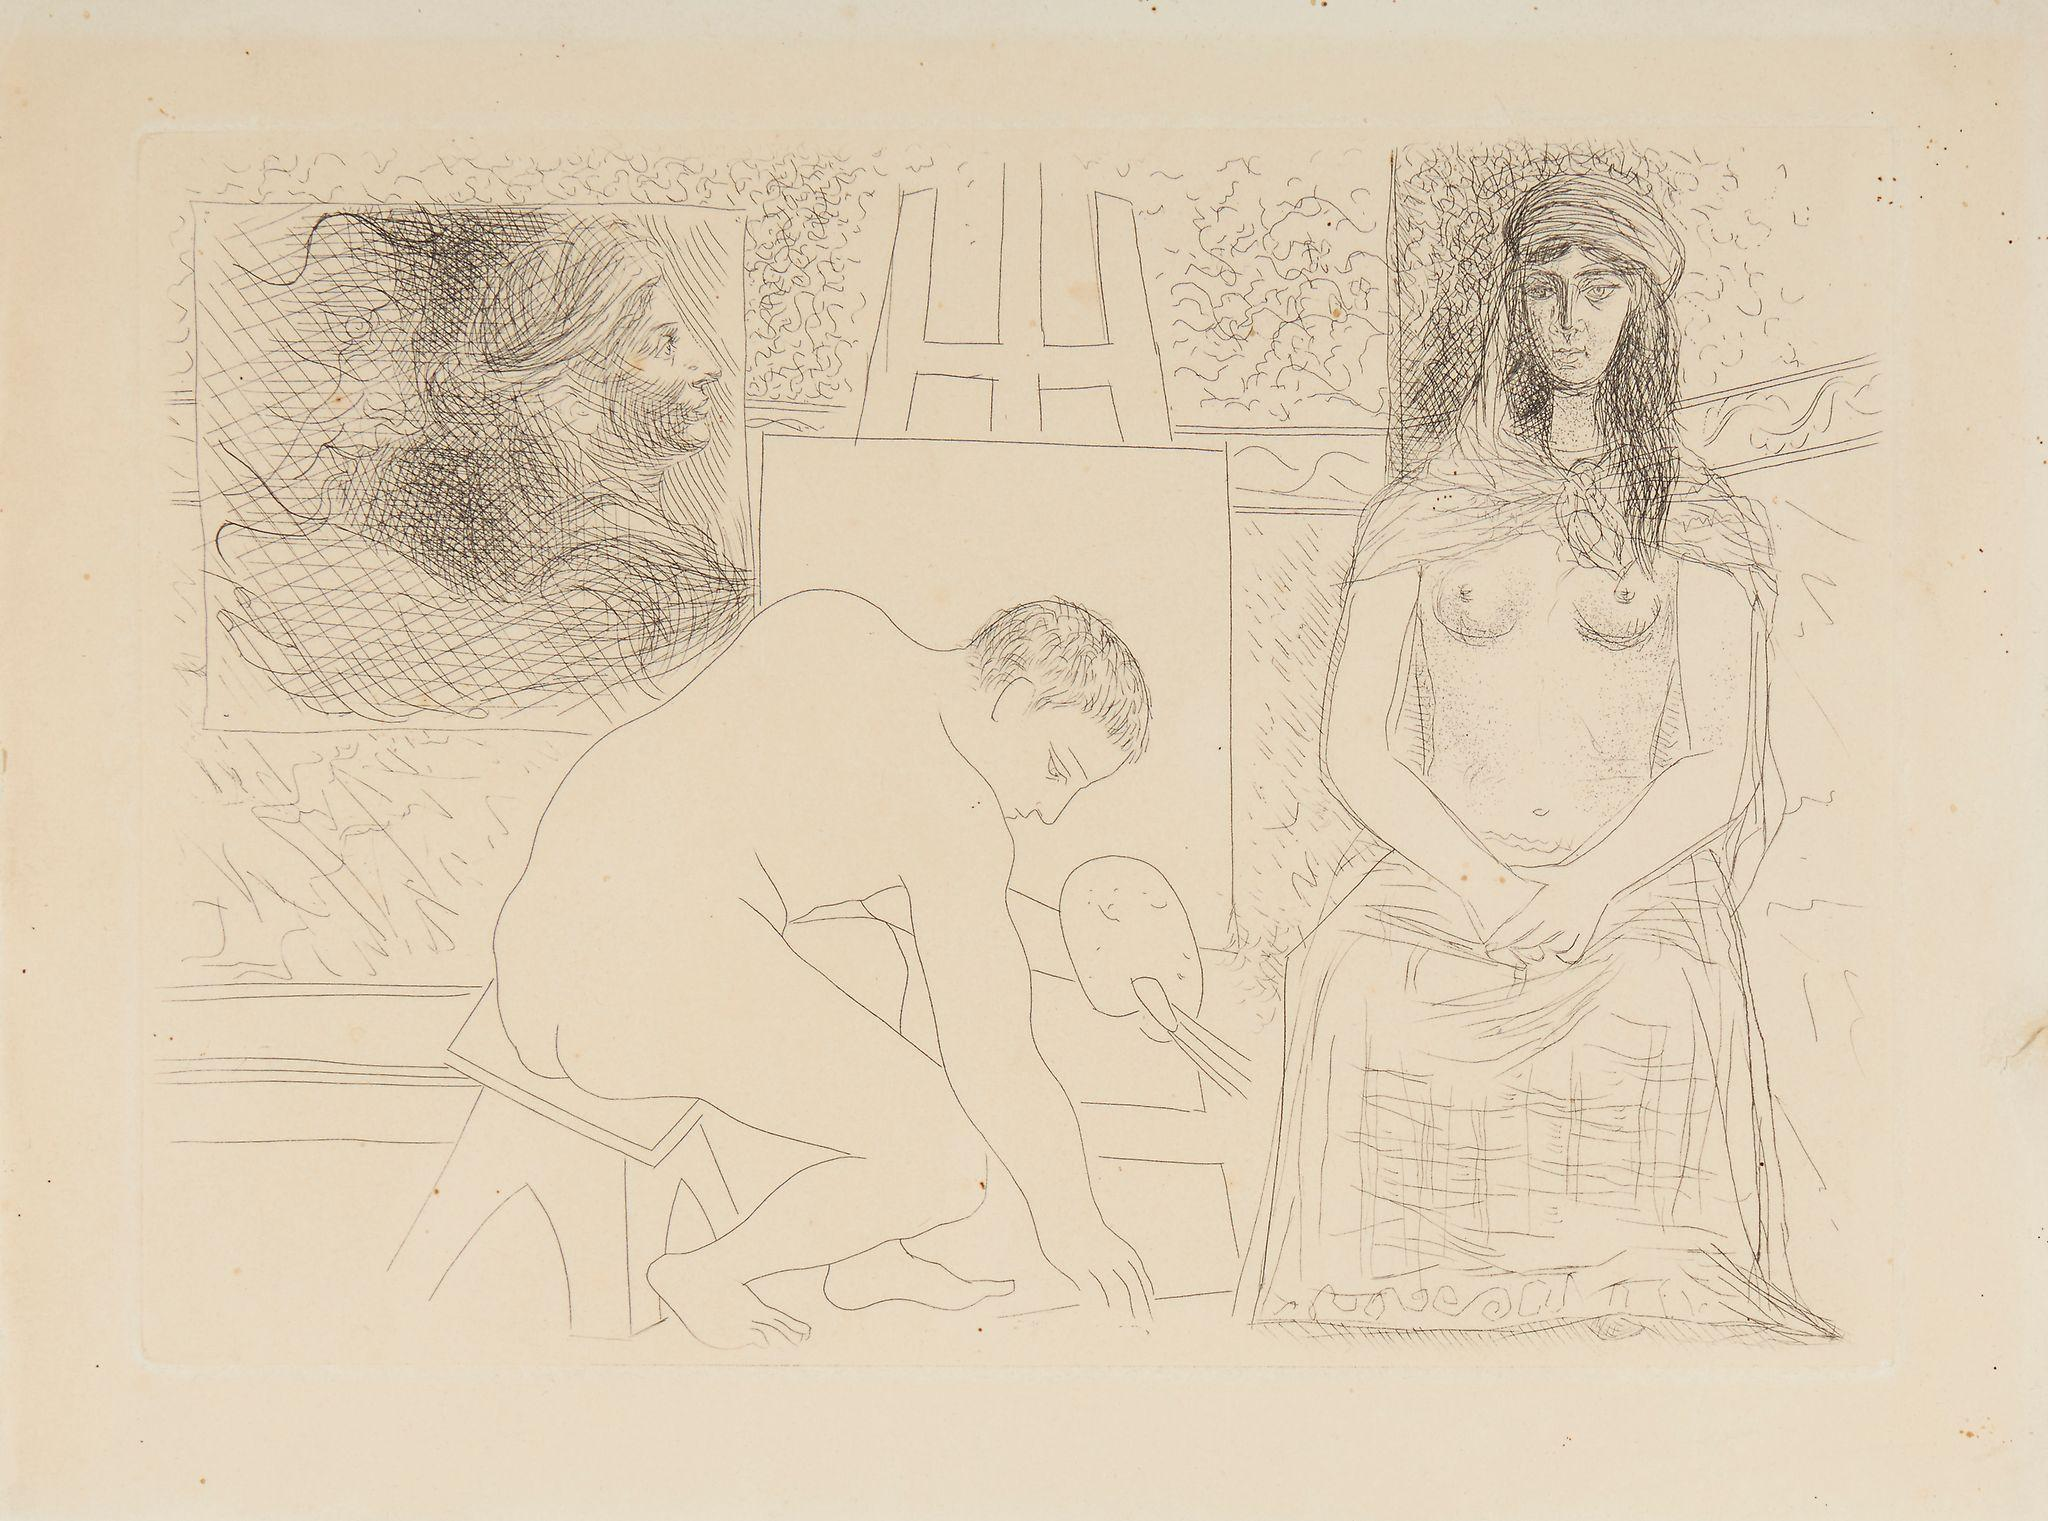 Plate 7 from Honore de Balzac, Le Chef D'Oeuvre Inconnu (B 88) by Pablo Picasso